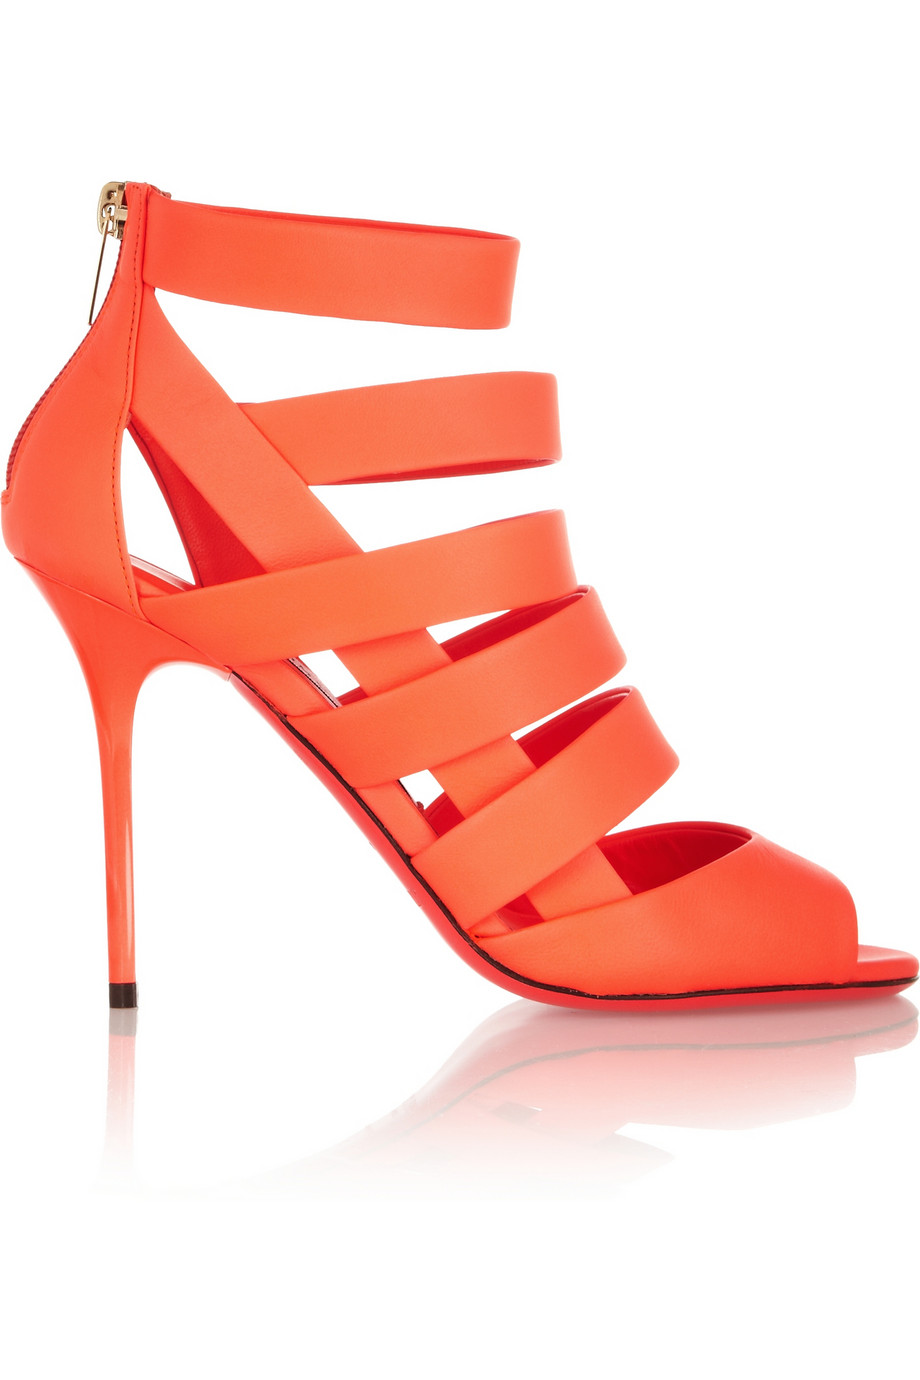 Jimmy Choo Damsen Neon Matte Leather Sandals $547.25